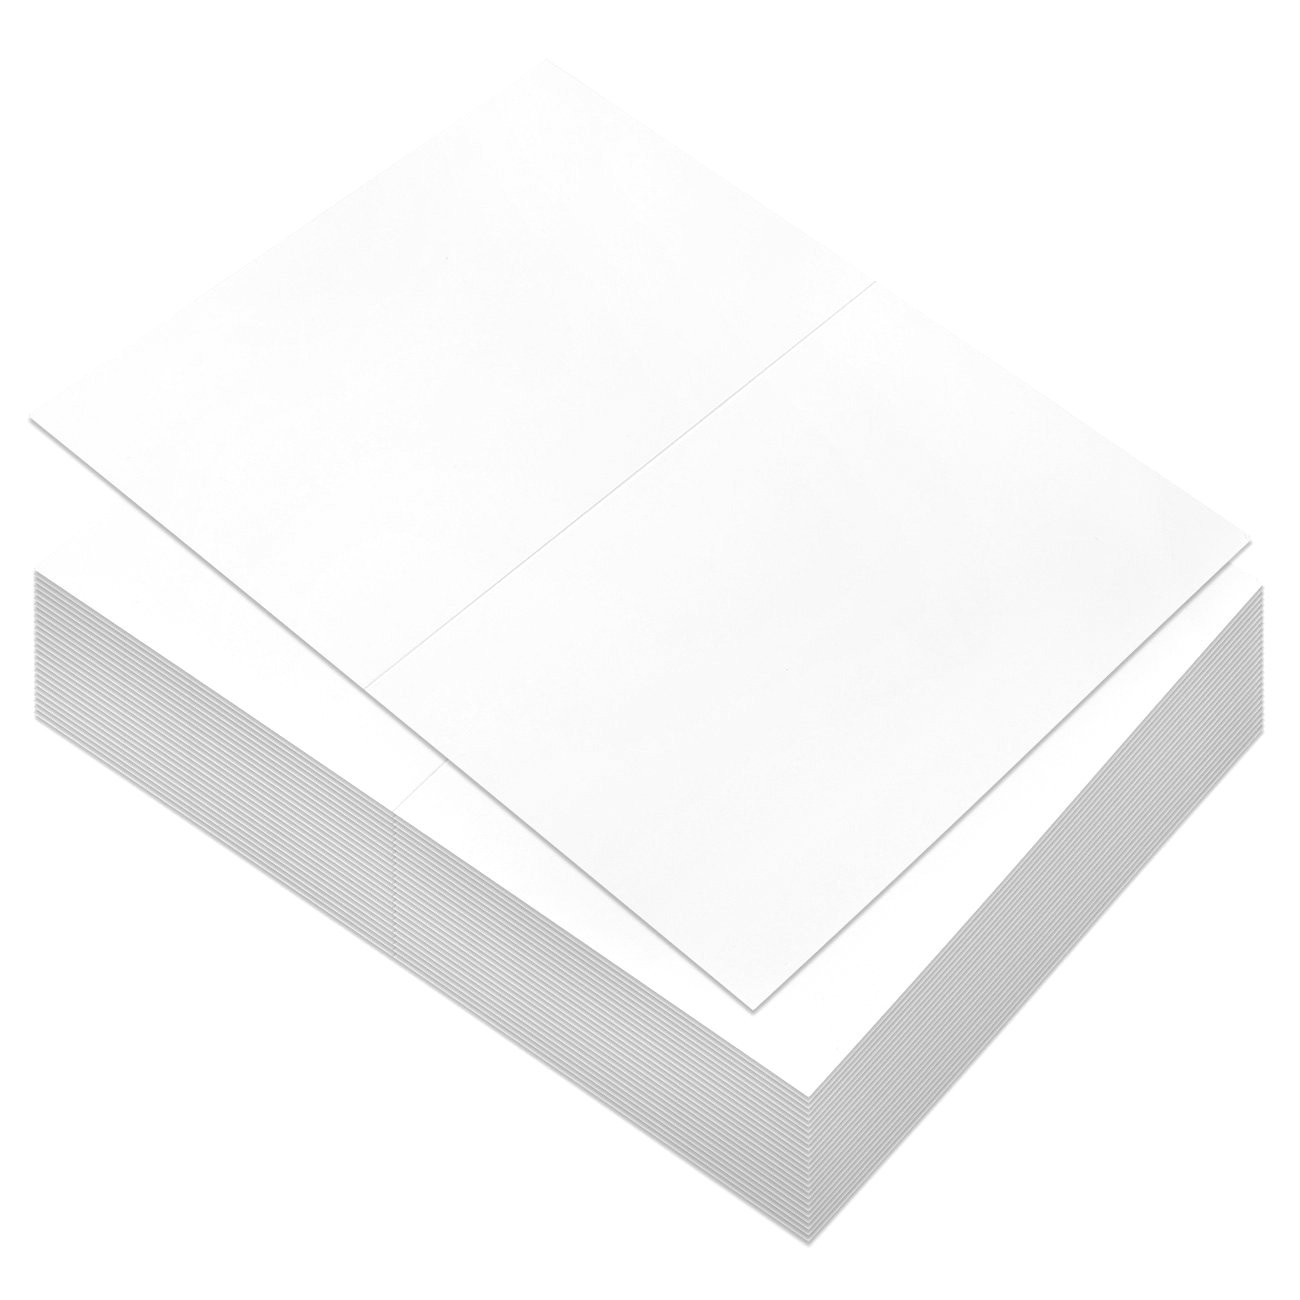 100 Sheets White Greeting Card Stock - Half Fold Greeting Cards for DIY Craft, Blank Note Cards, 8.5 x 5.5 Inches Folded